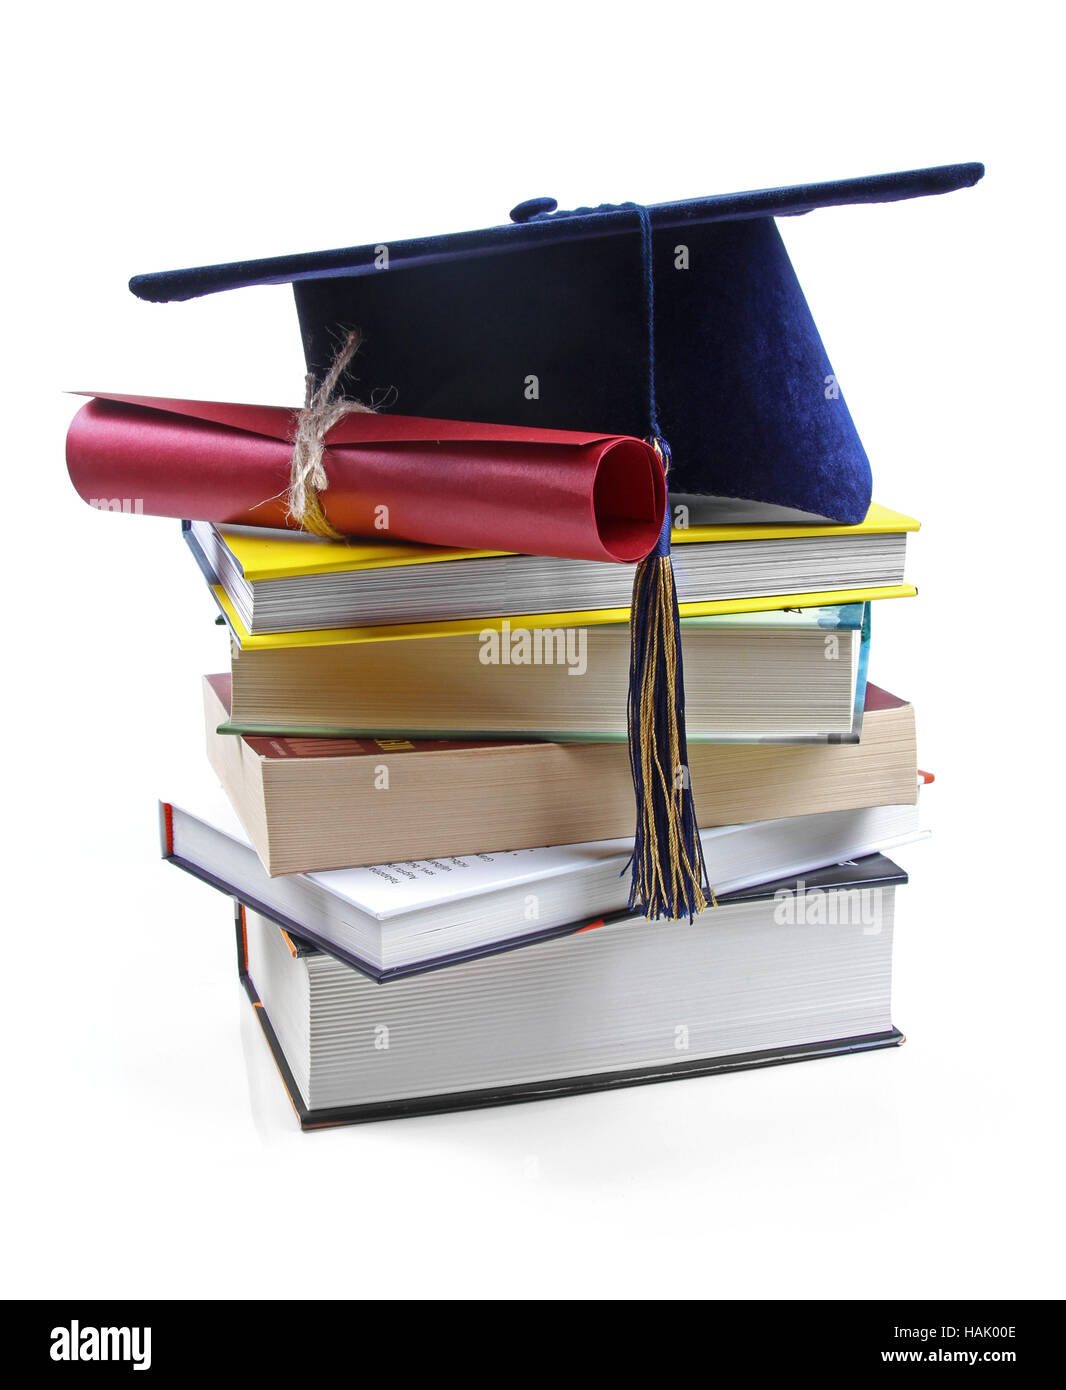 graduation hat and diploma on stack of books - Stock Image